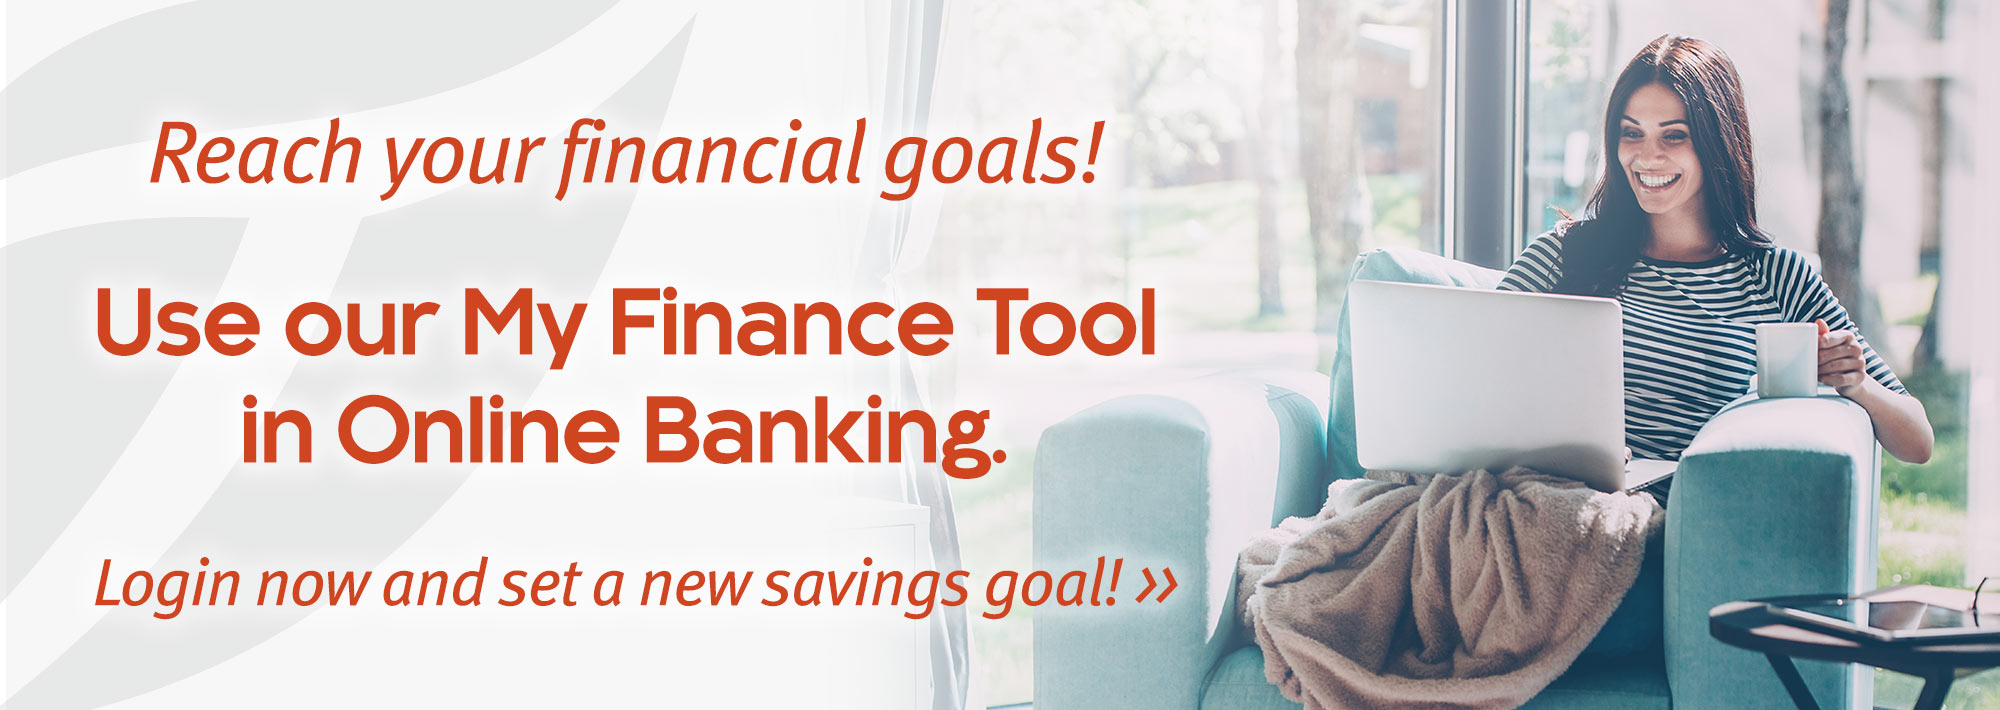 Reach your financial goals! Use our My Finance Tool in Online Banking. Login now and set a new savings goal!